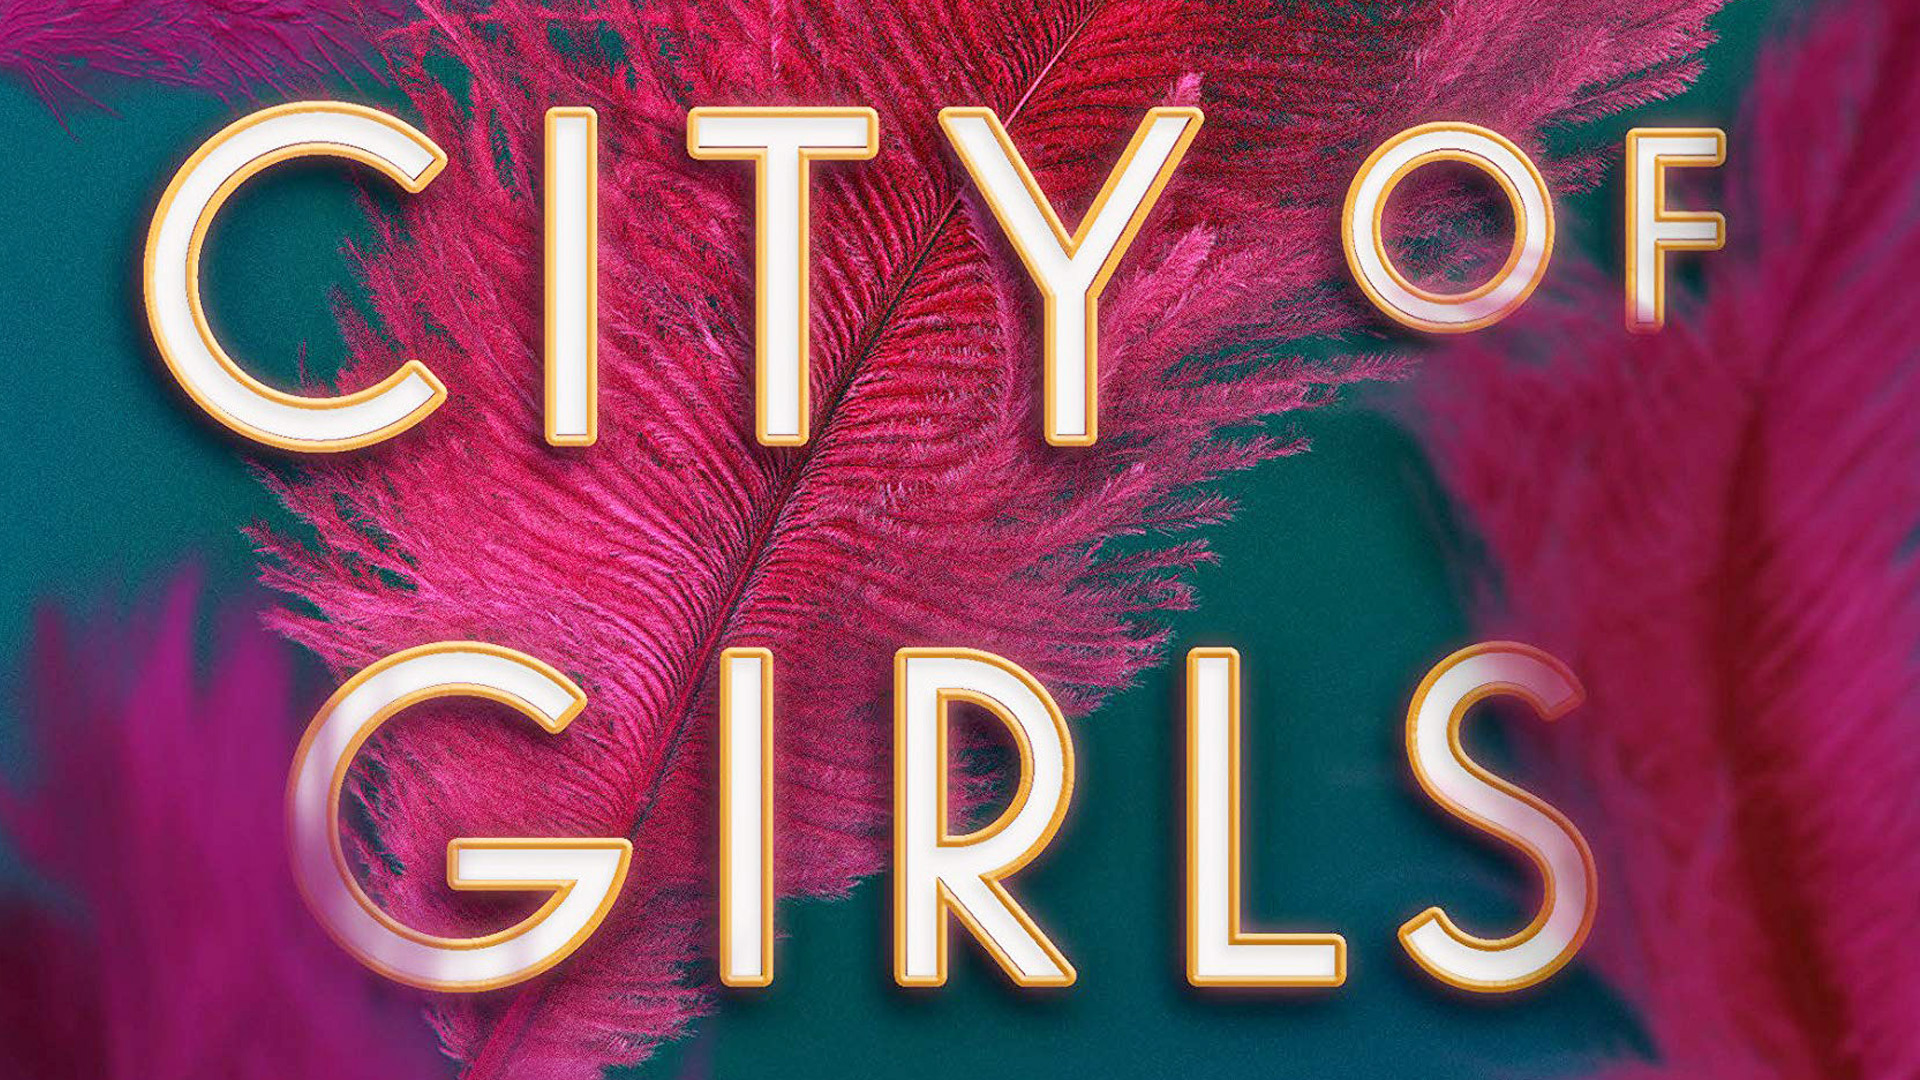 City of Girls (2019)